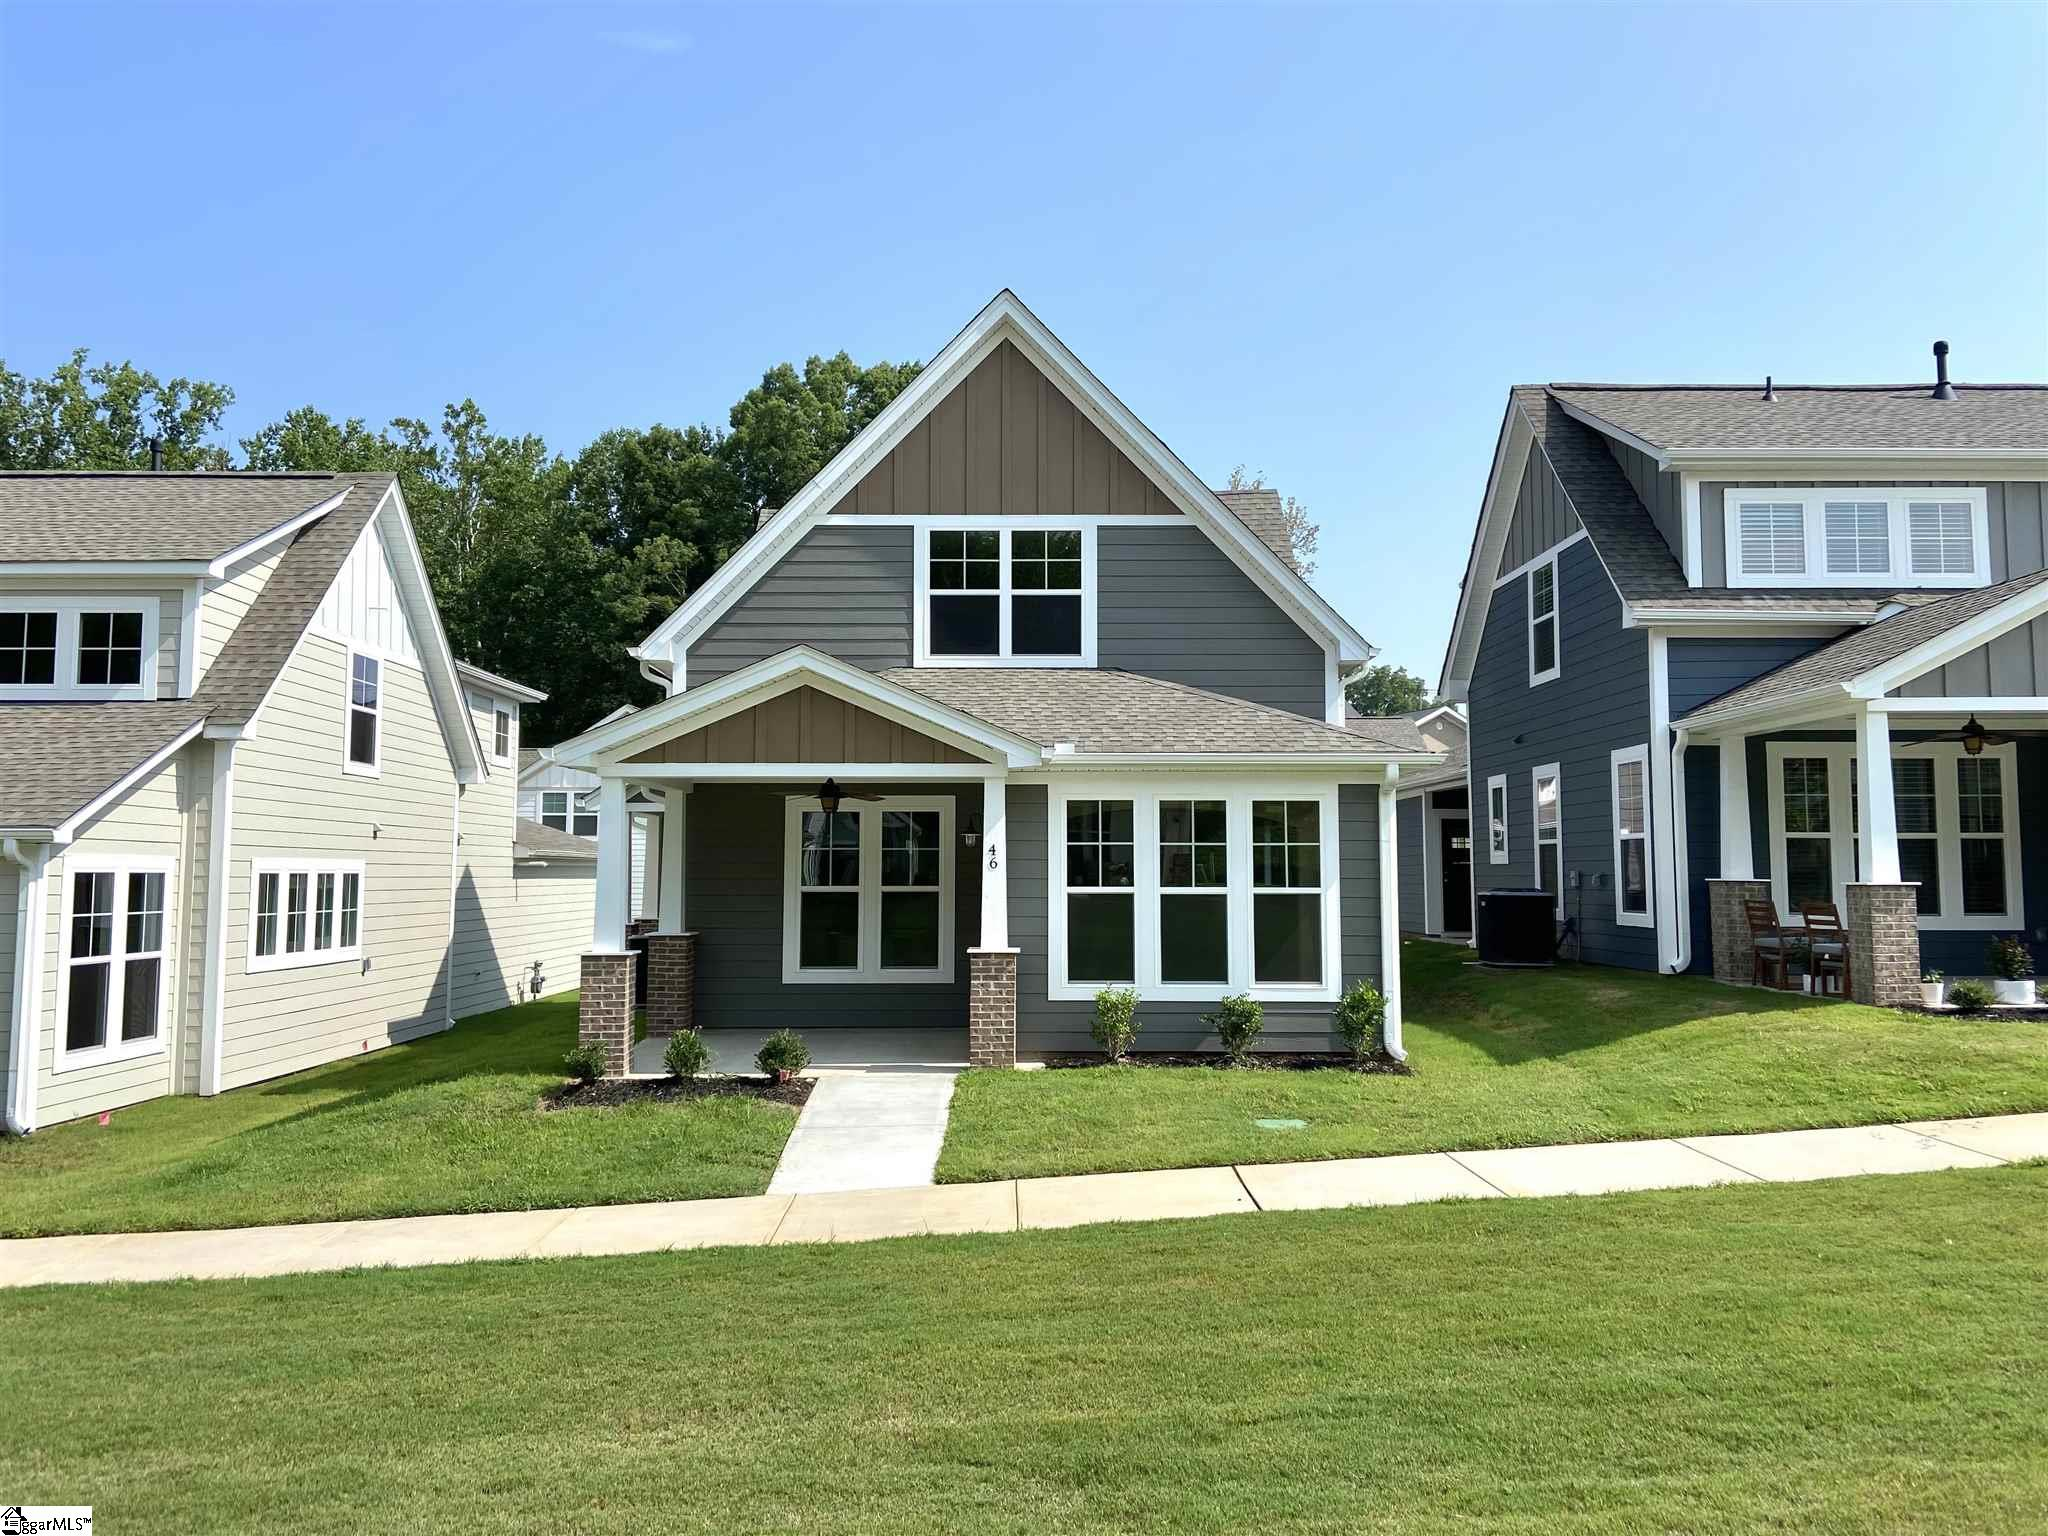 46 Cottage Knoll, Greenville, SC 29609